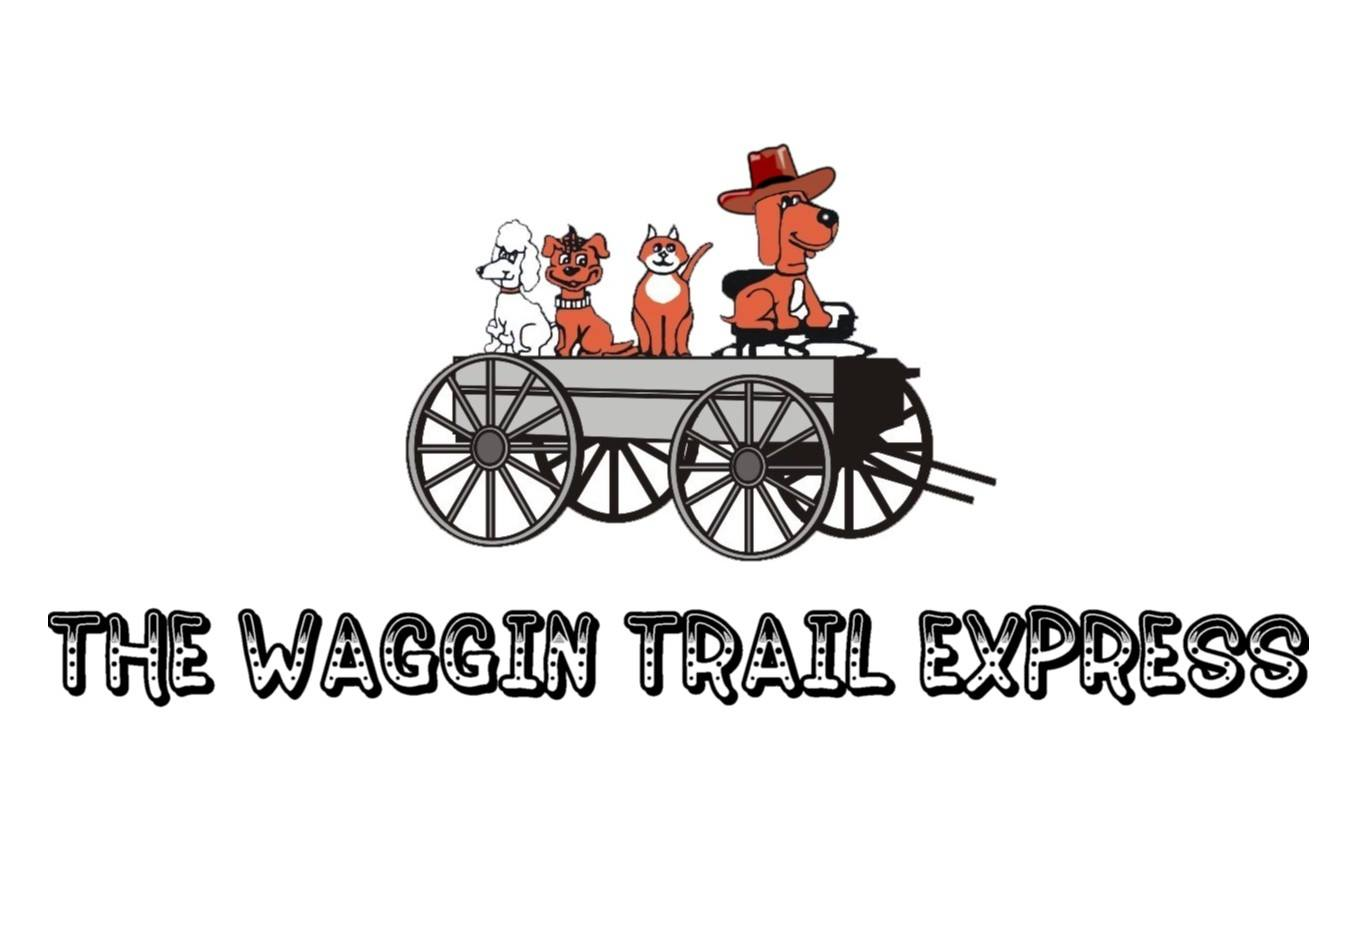 The Waggin Trail Express Is Now Building More Than Just A